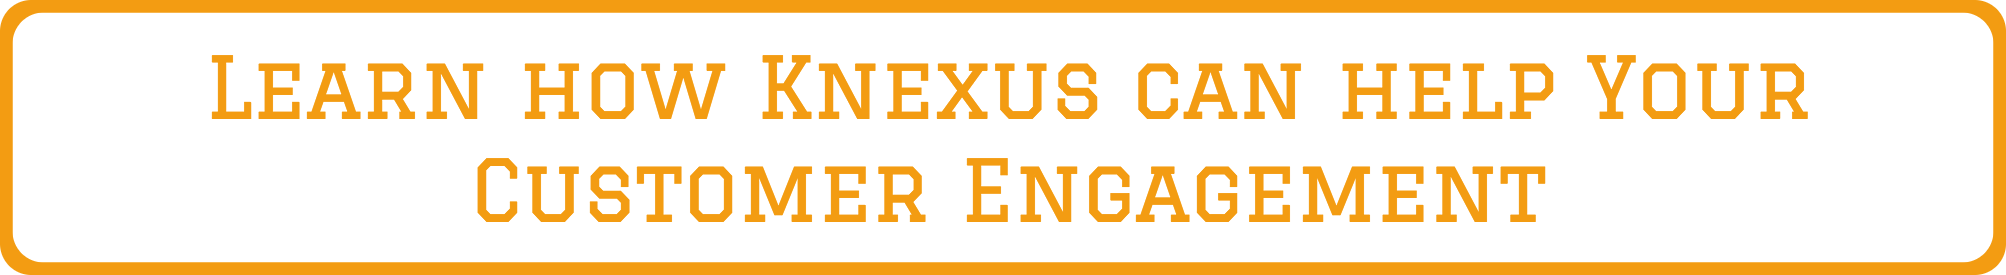 how knexus can help to improve customer engagement